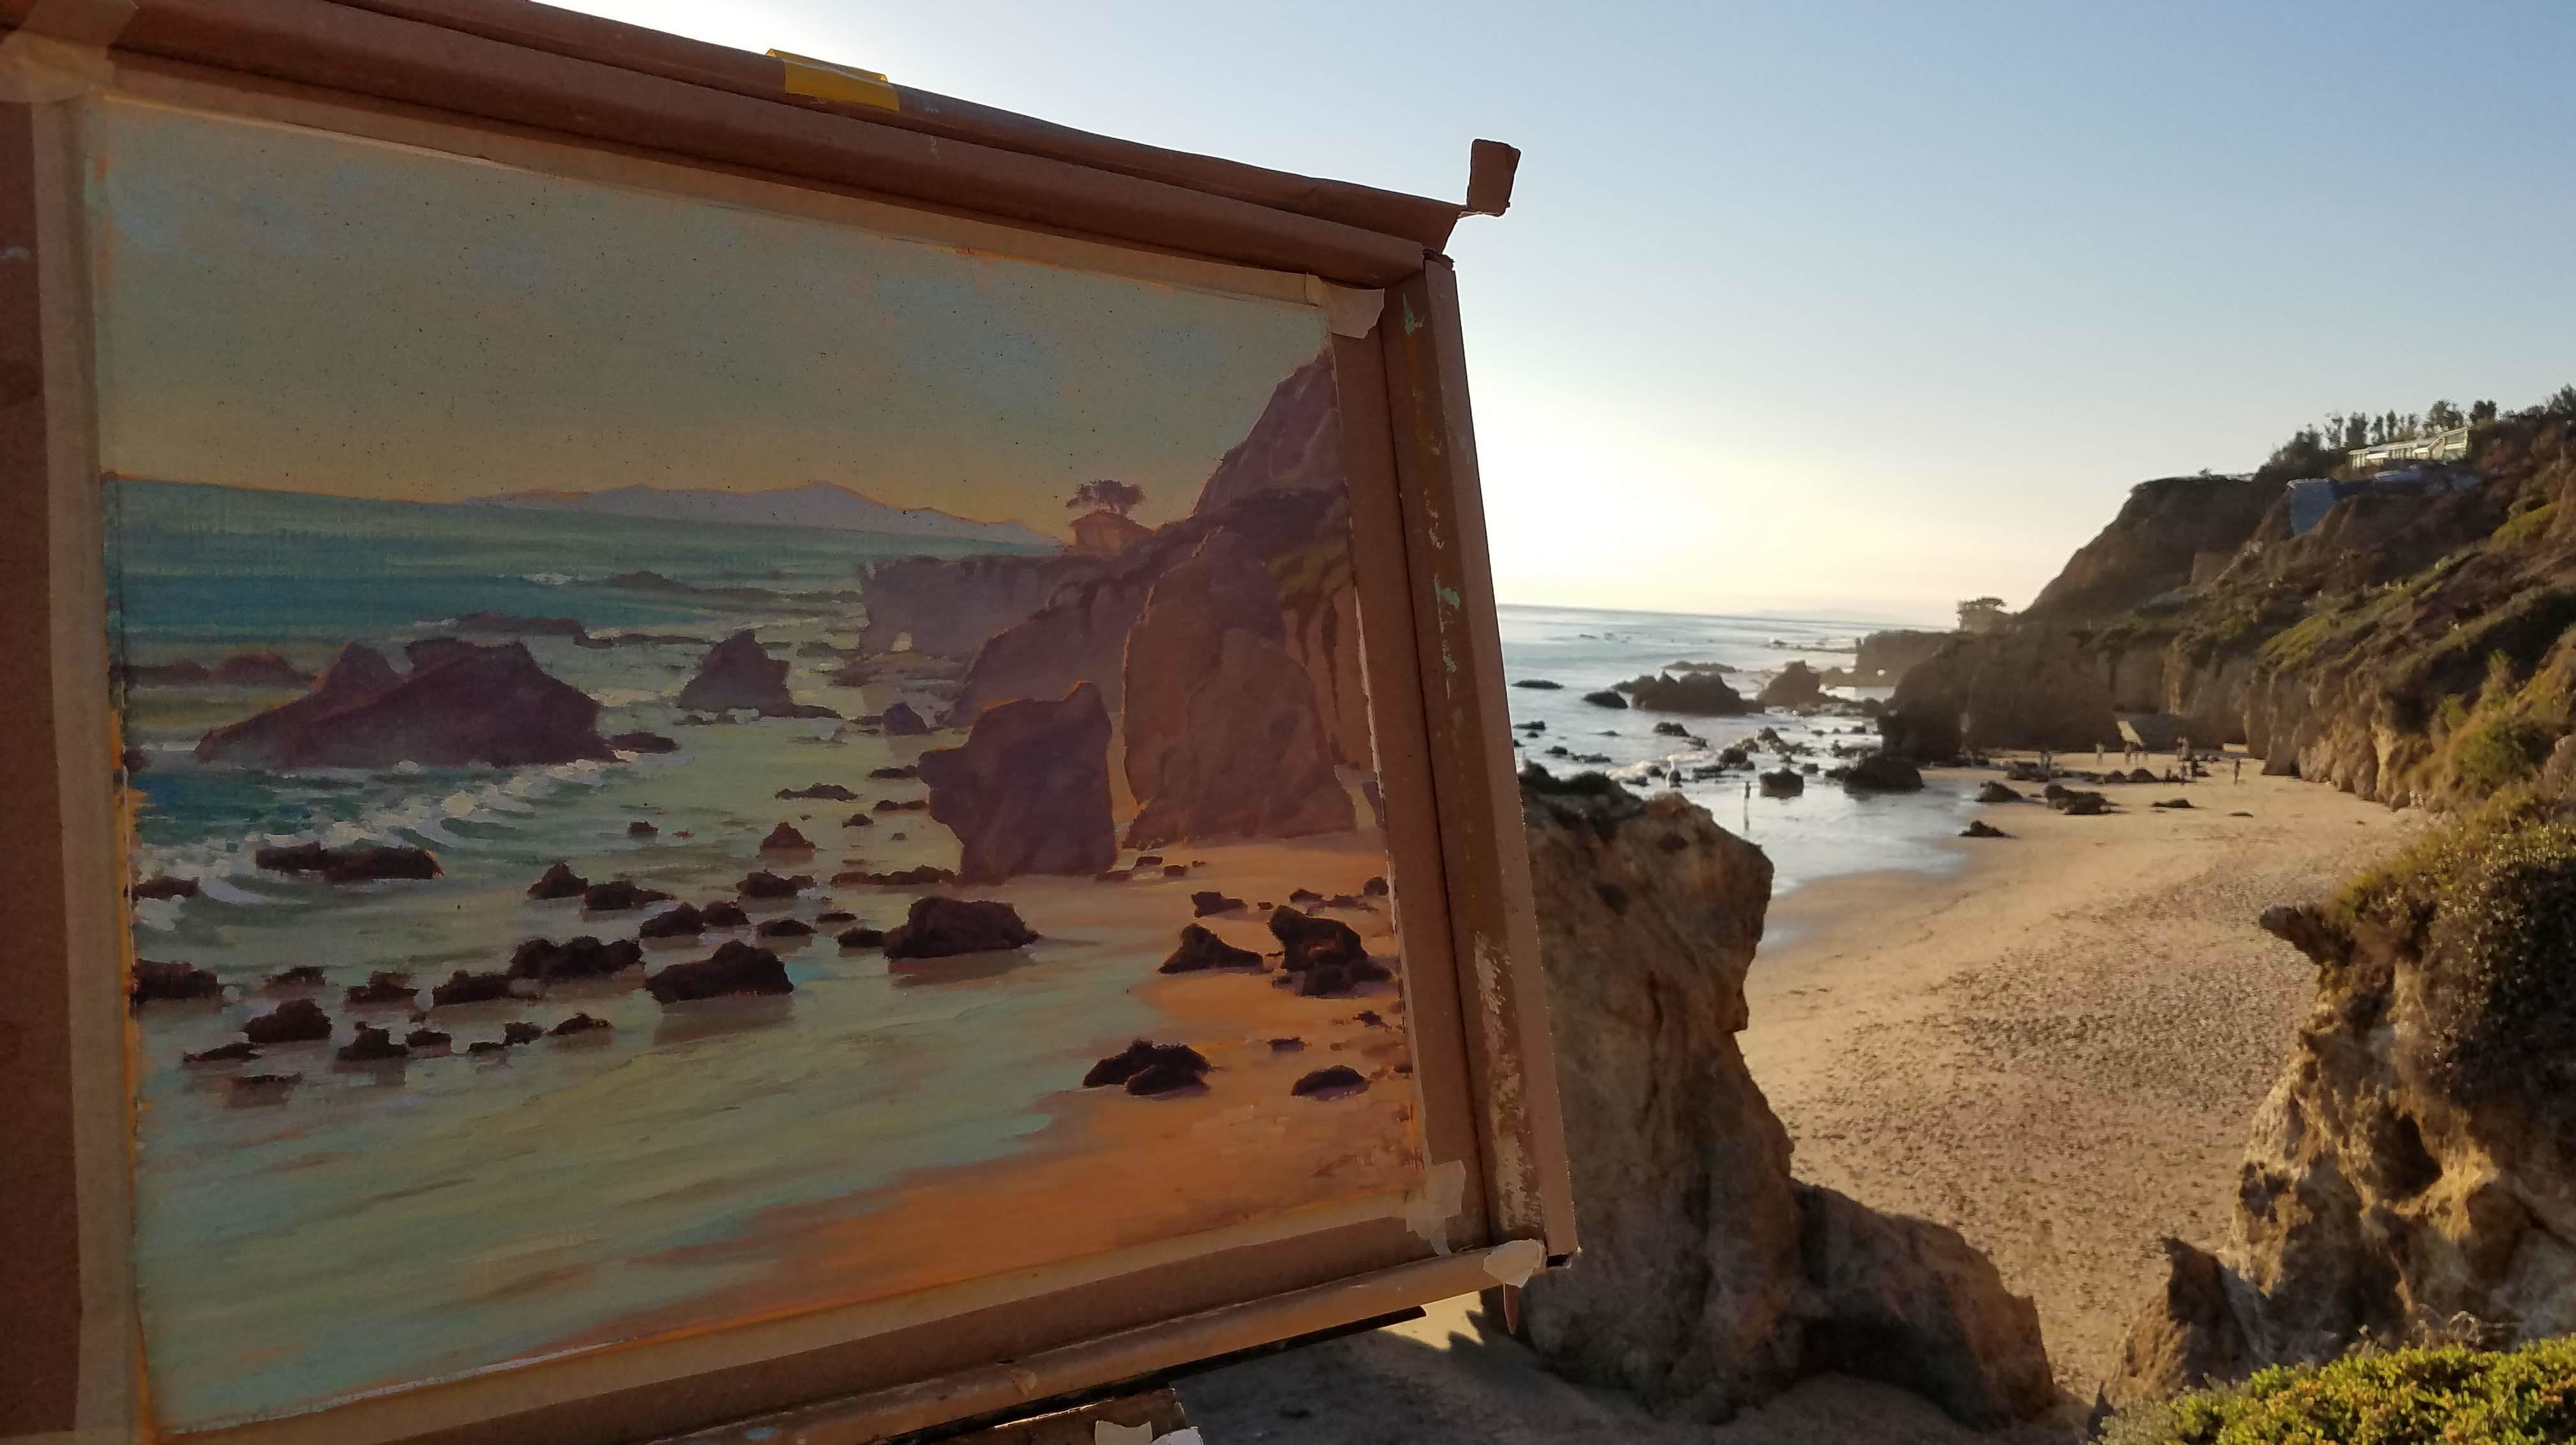 El Matador State Beach is perfect for plein air painting